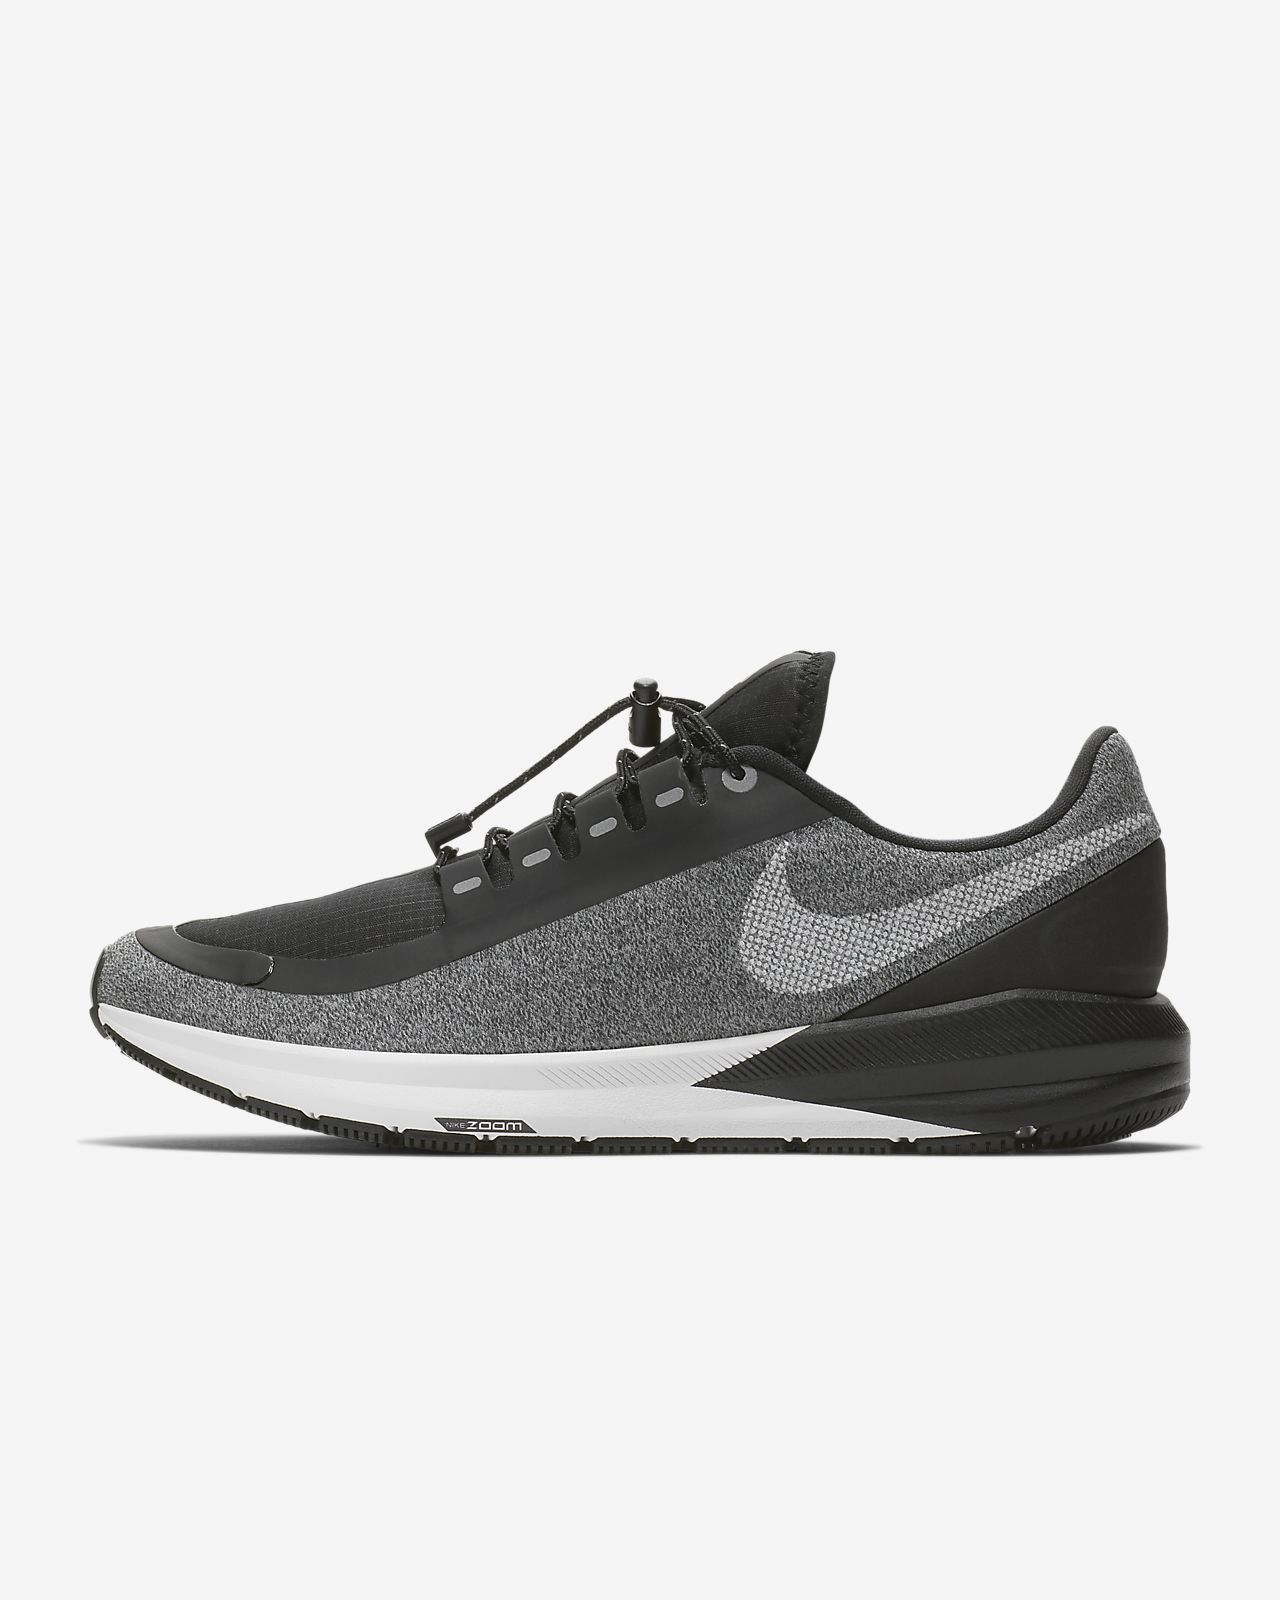 De Structure Shield Chaussure Water Nike Zoom 22 Running Air 8OPyNn0mwv